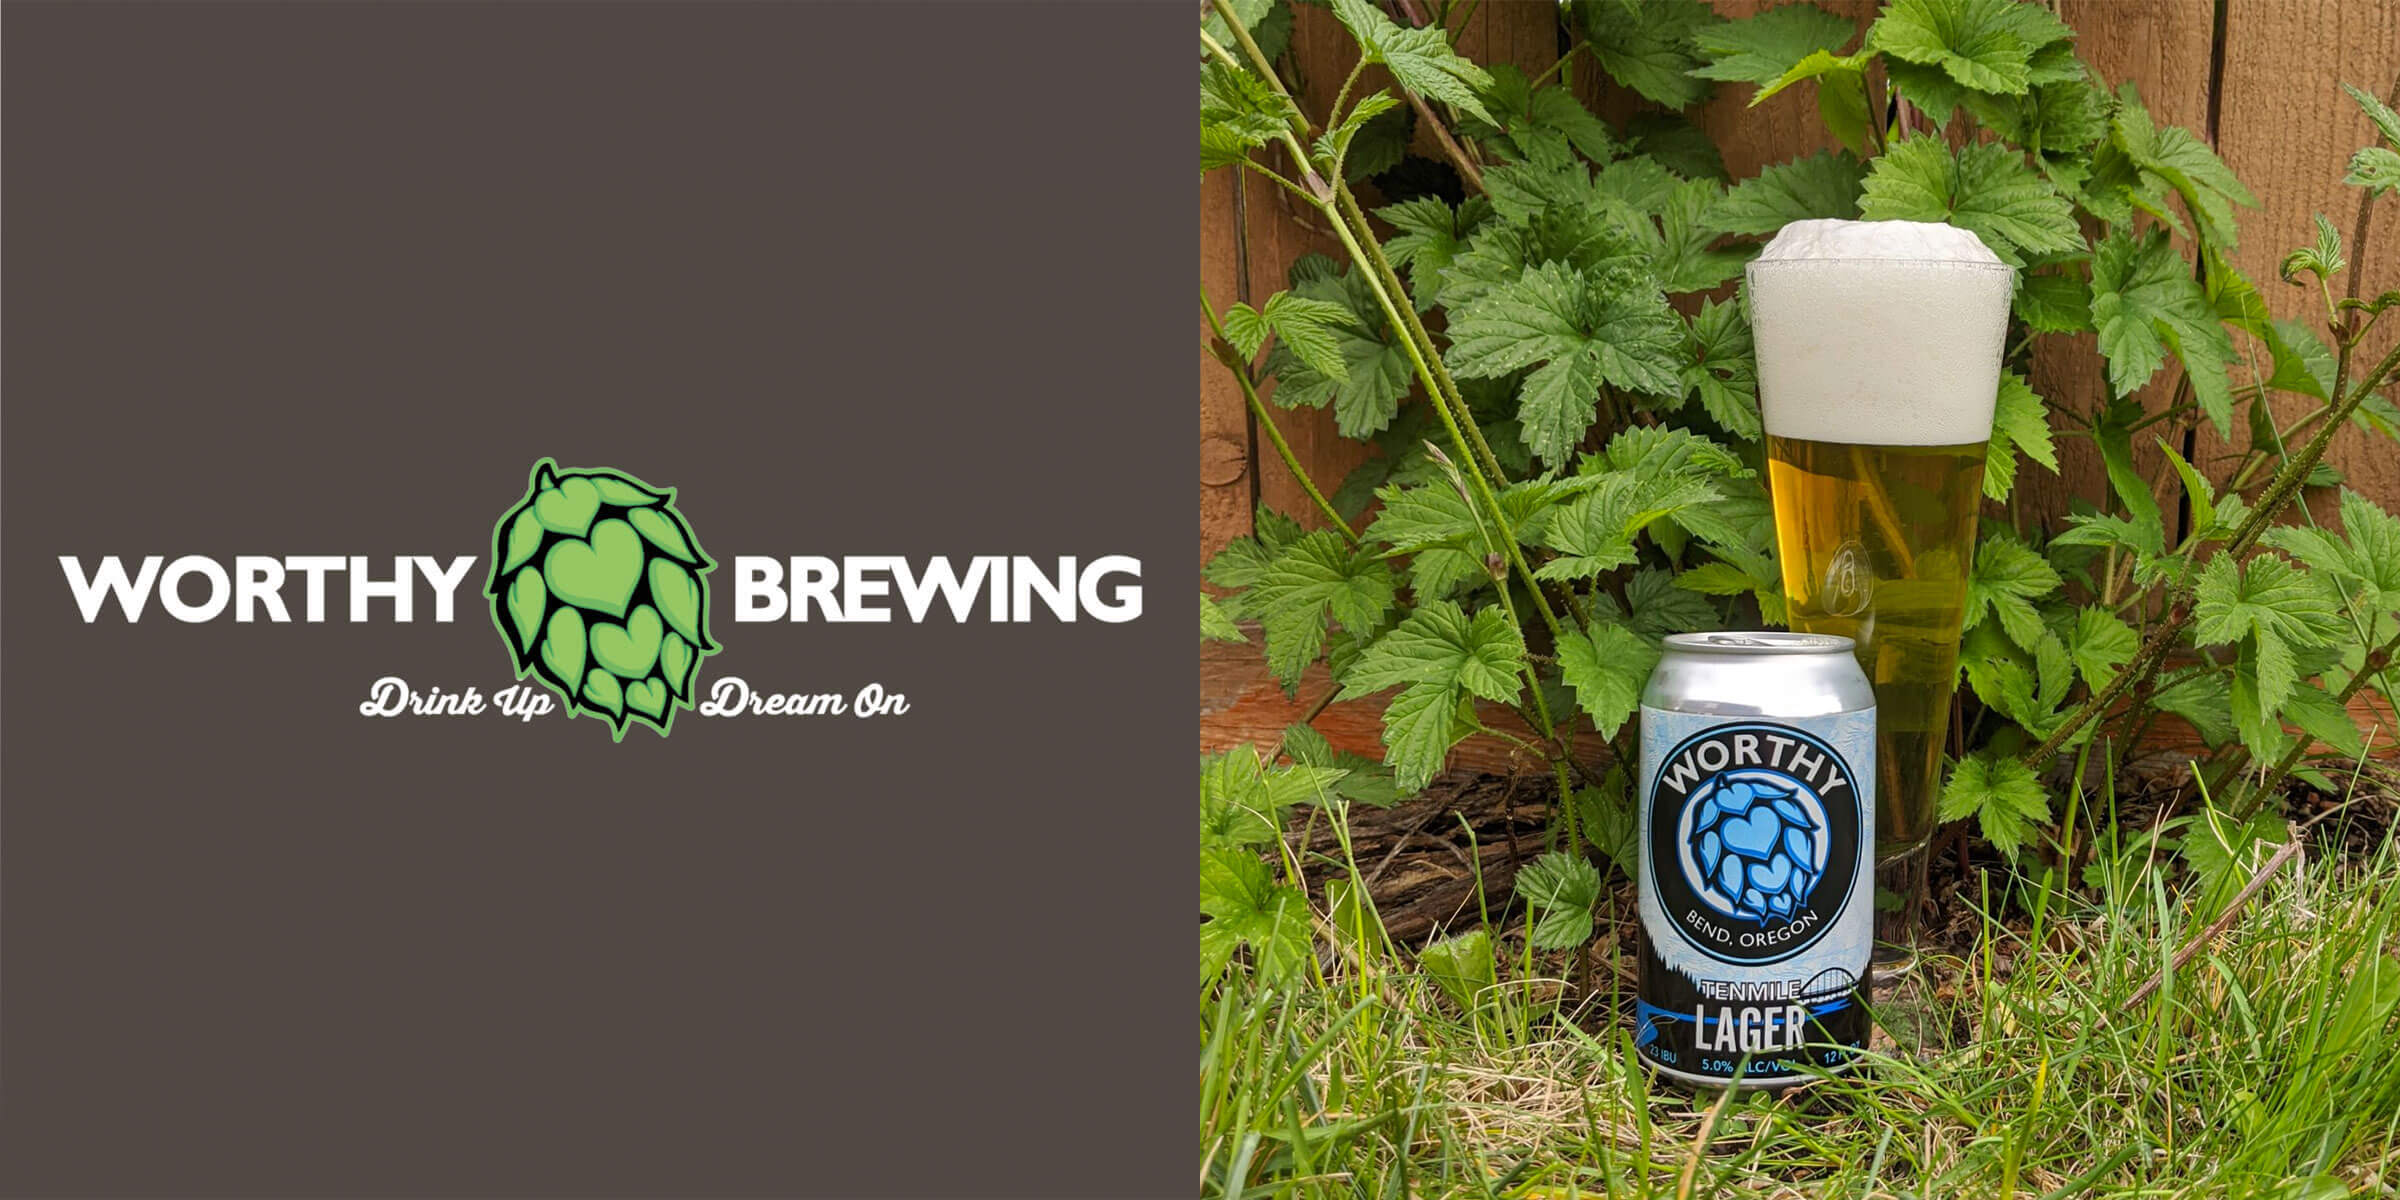 Worthy Brewing Company released Tenmile, a crisp dry-hopped lager that has an environmental focus with recyclable packaging and proceeds benefiting forests.